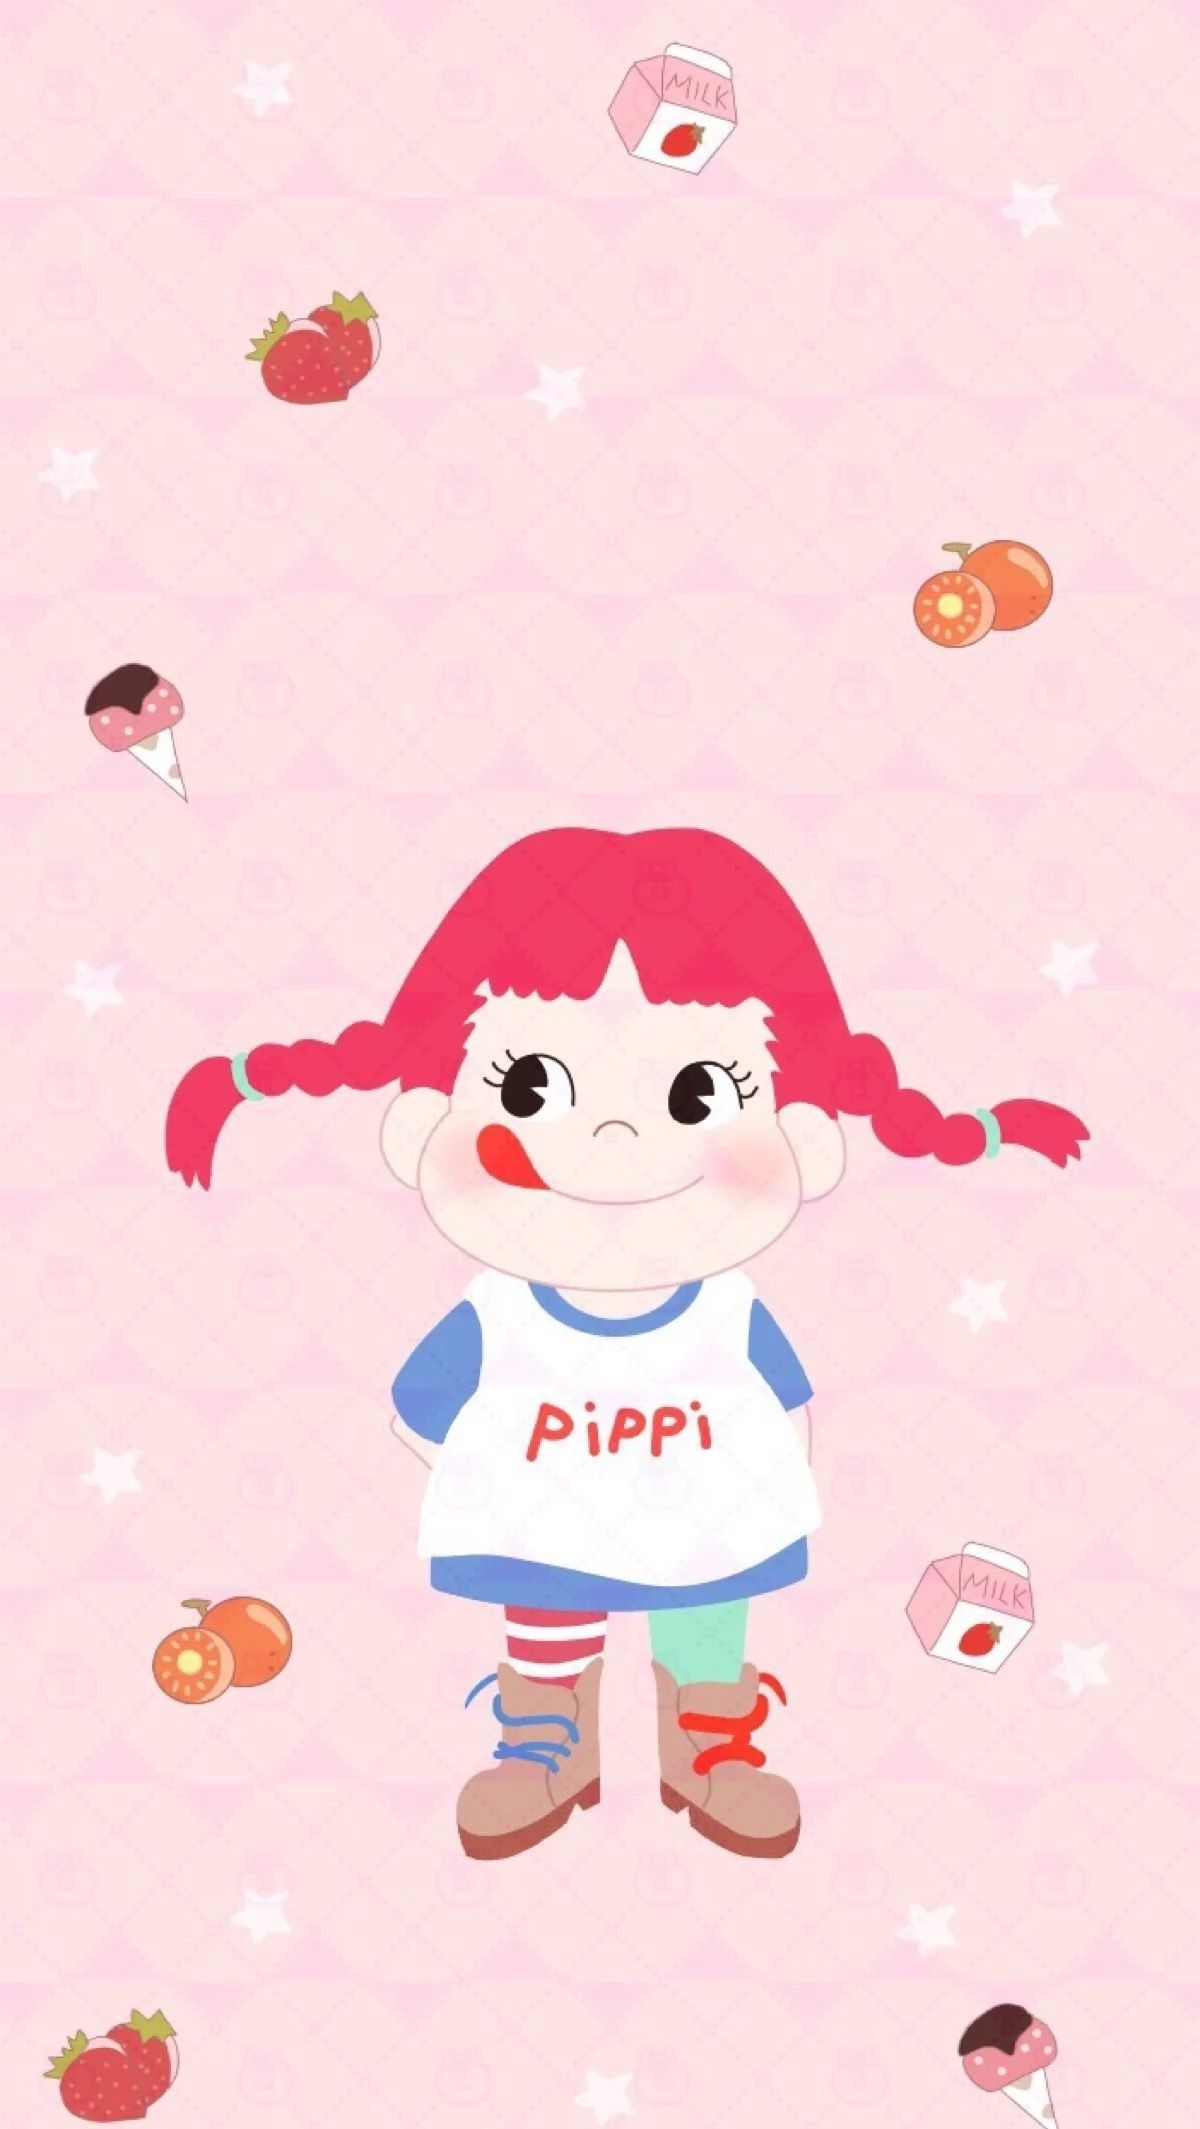 Res: 1200x2129, Sanrio Wallpaper, Hd Wallpaper, Kawaii Background, Iphone Wallpapers, Elmo,  Sticker, Pastel, Backgrounds, Iphone Backgrounds